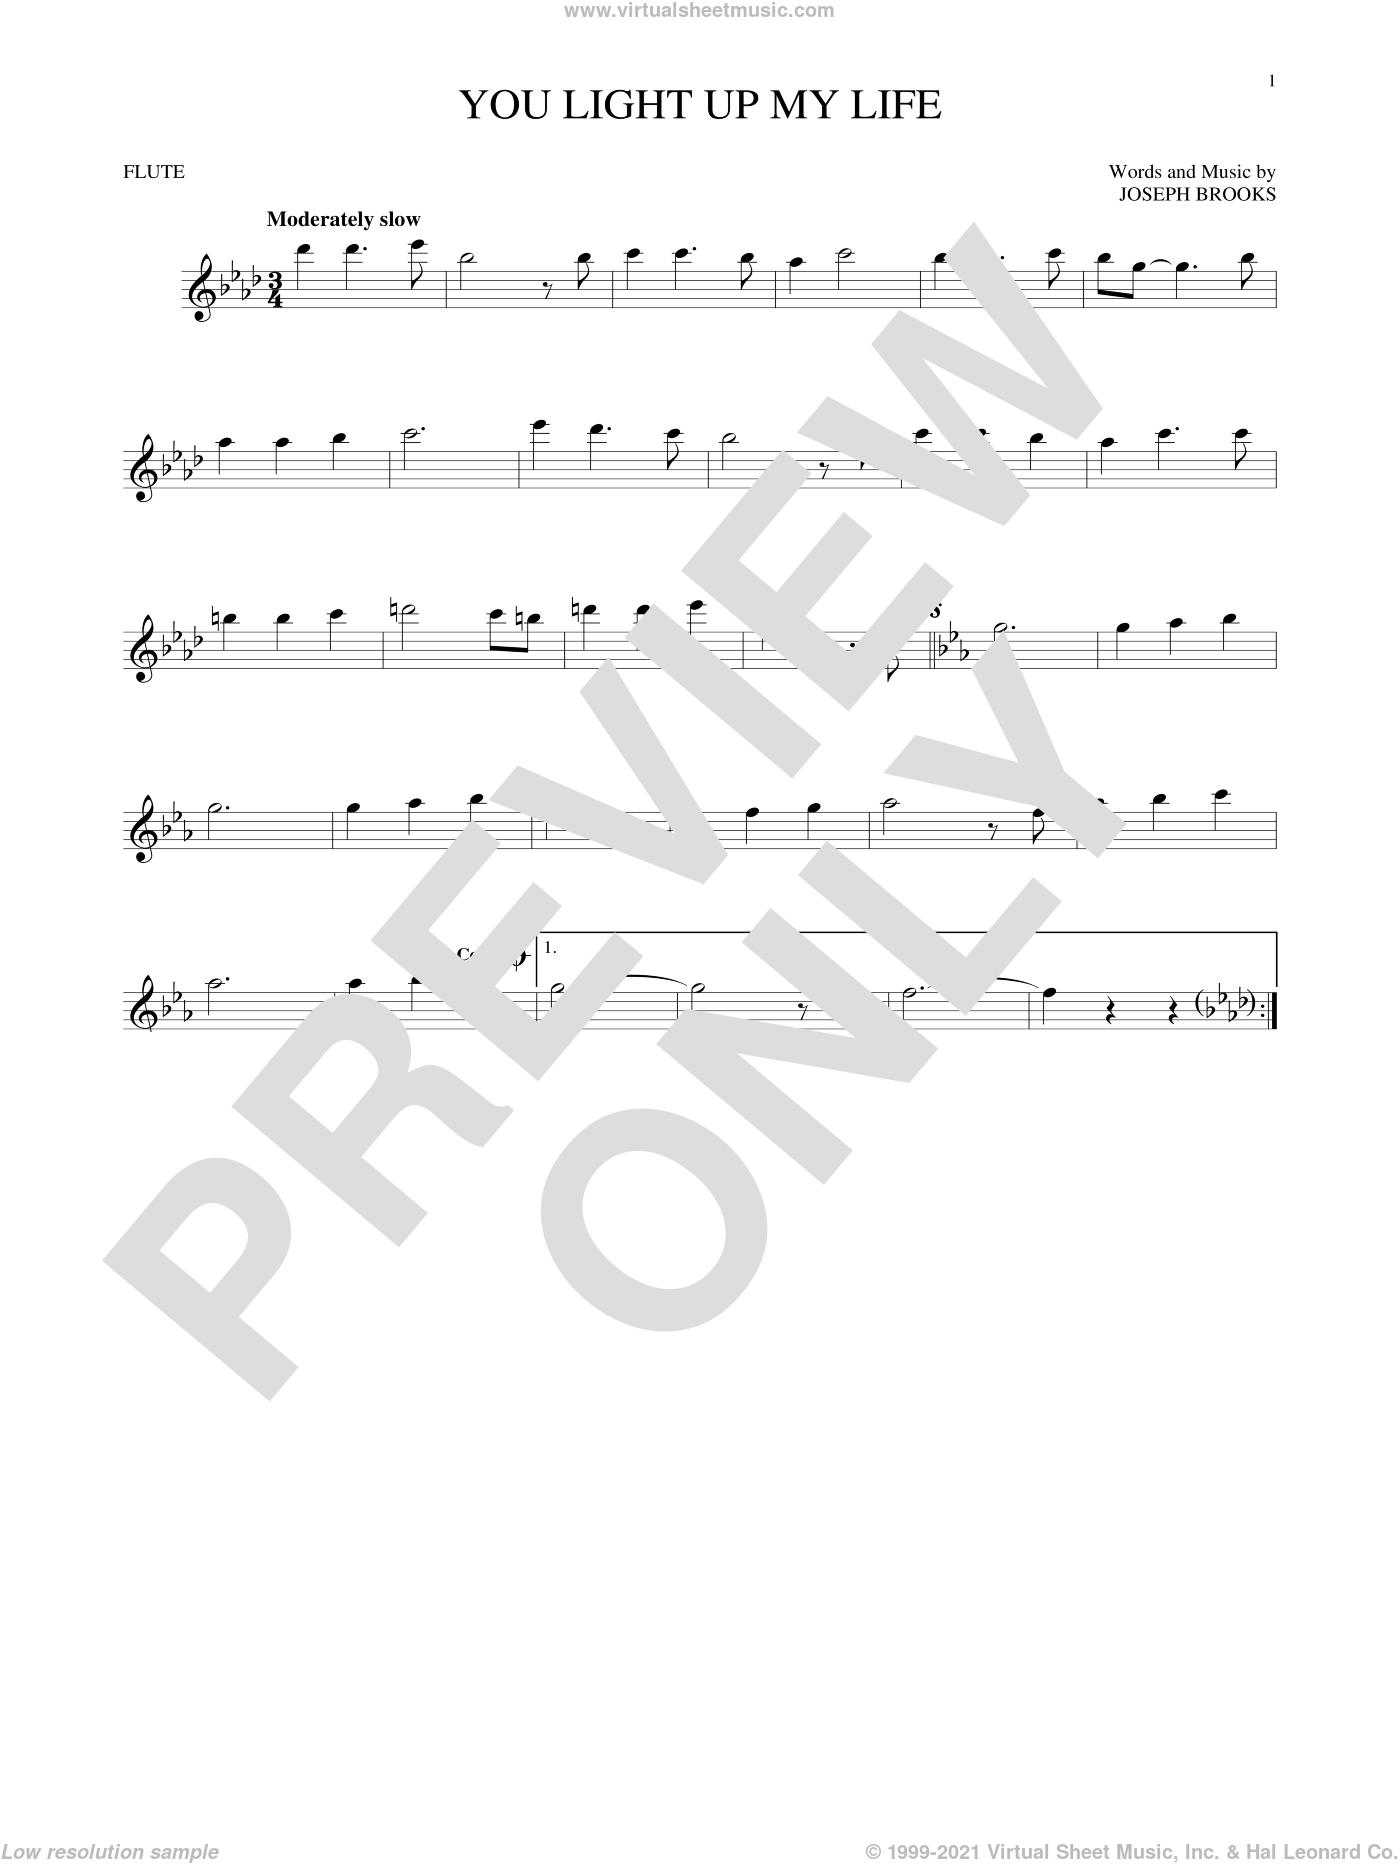 You Light Up My Life sheet music for flute solo by Debby Boone and Joseph Brooks, intermediate skill level